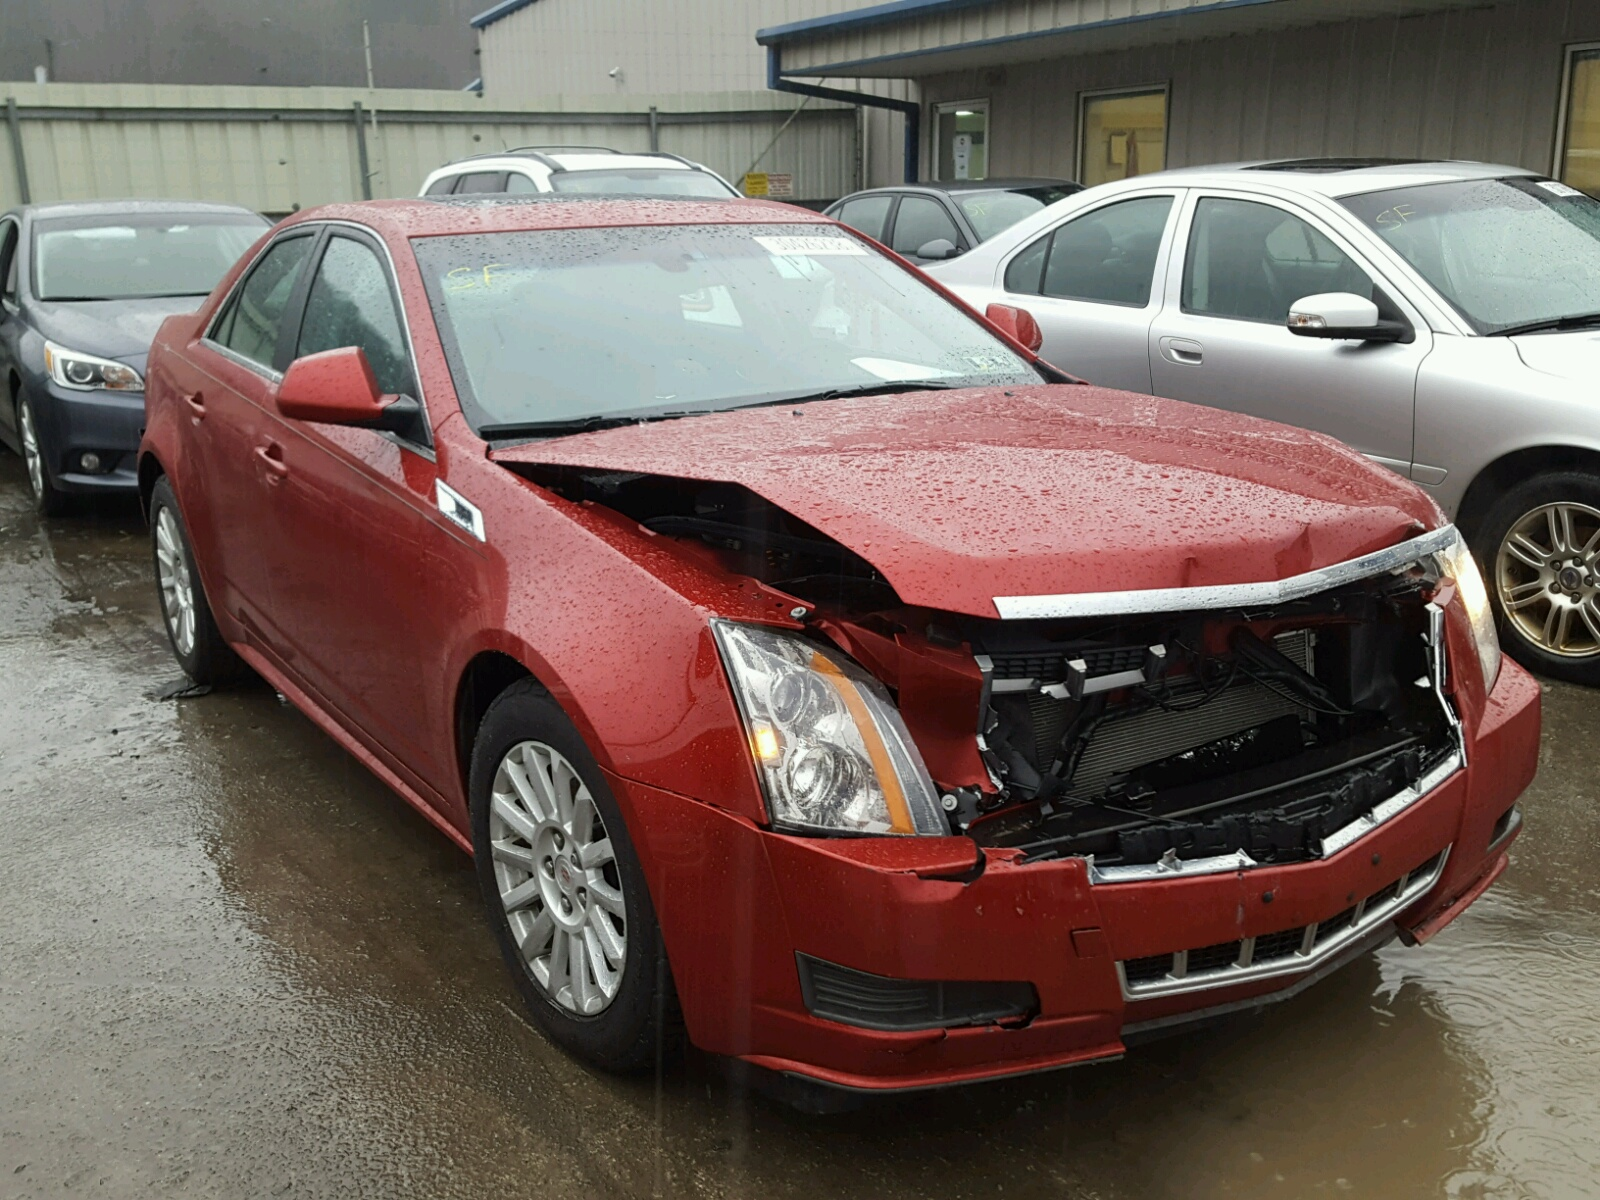 inventory edmonton alberta ats sale cts used for cadillac in